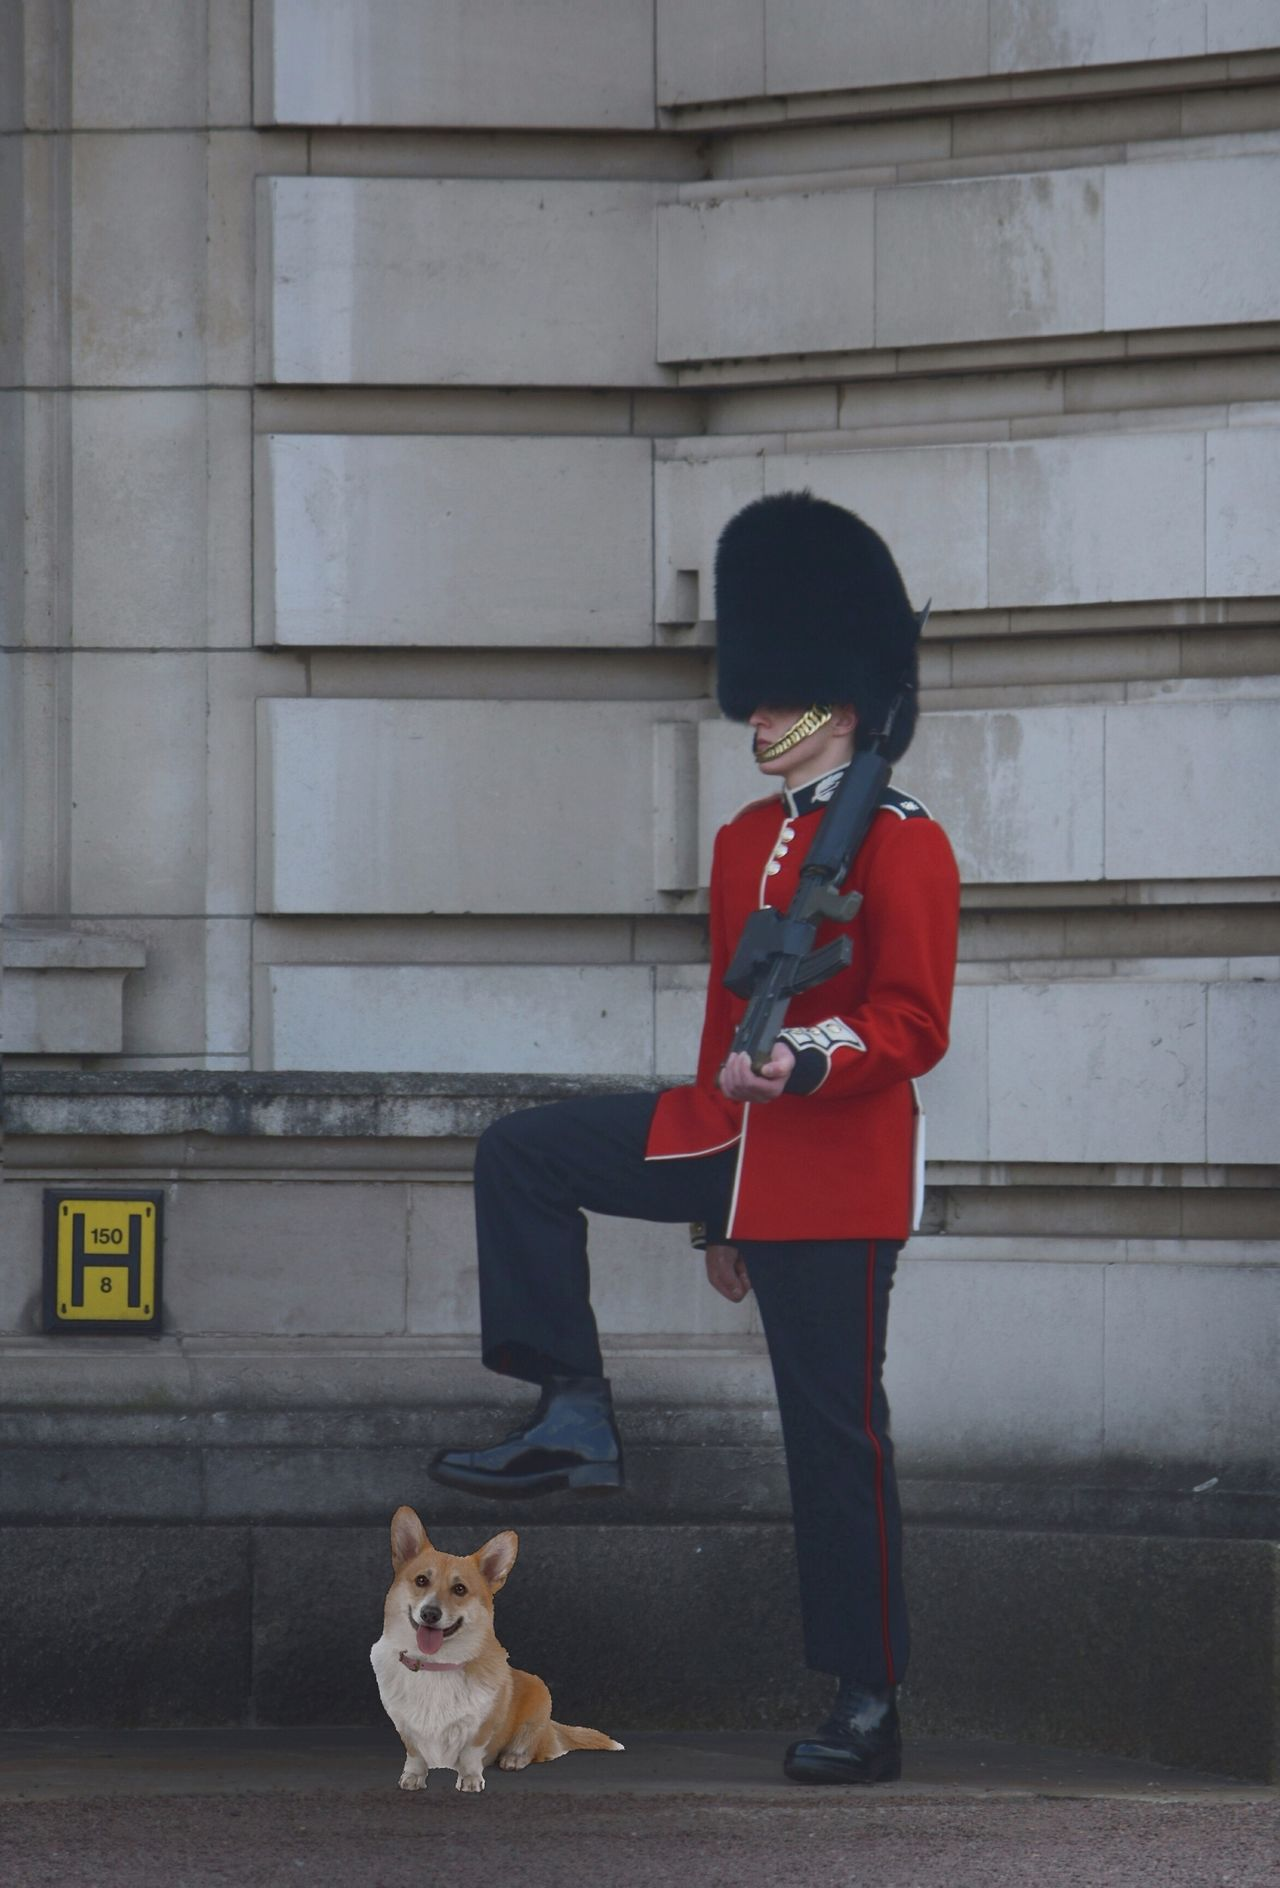 Just For Fun One Animal Corgi Watch Out! Portrait One Person People Buckingham Palace Guard Uniform Red Changing Of The Guard Royal Person Dog OOPS !!! Queens Household Guard Visit London London Military Tradition Cultures Marching Palace Outdoors Men